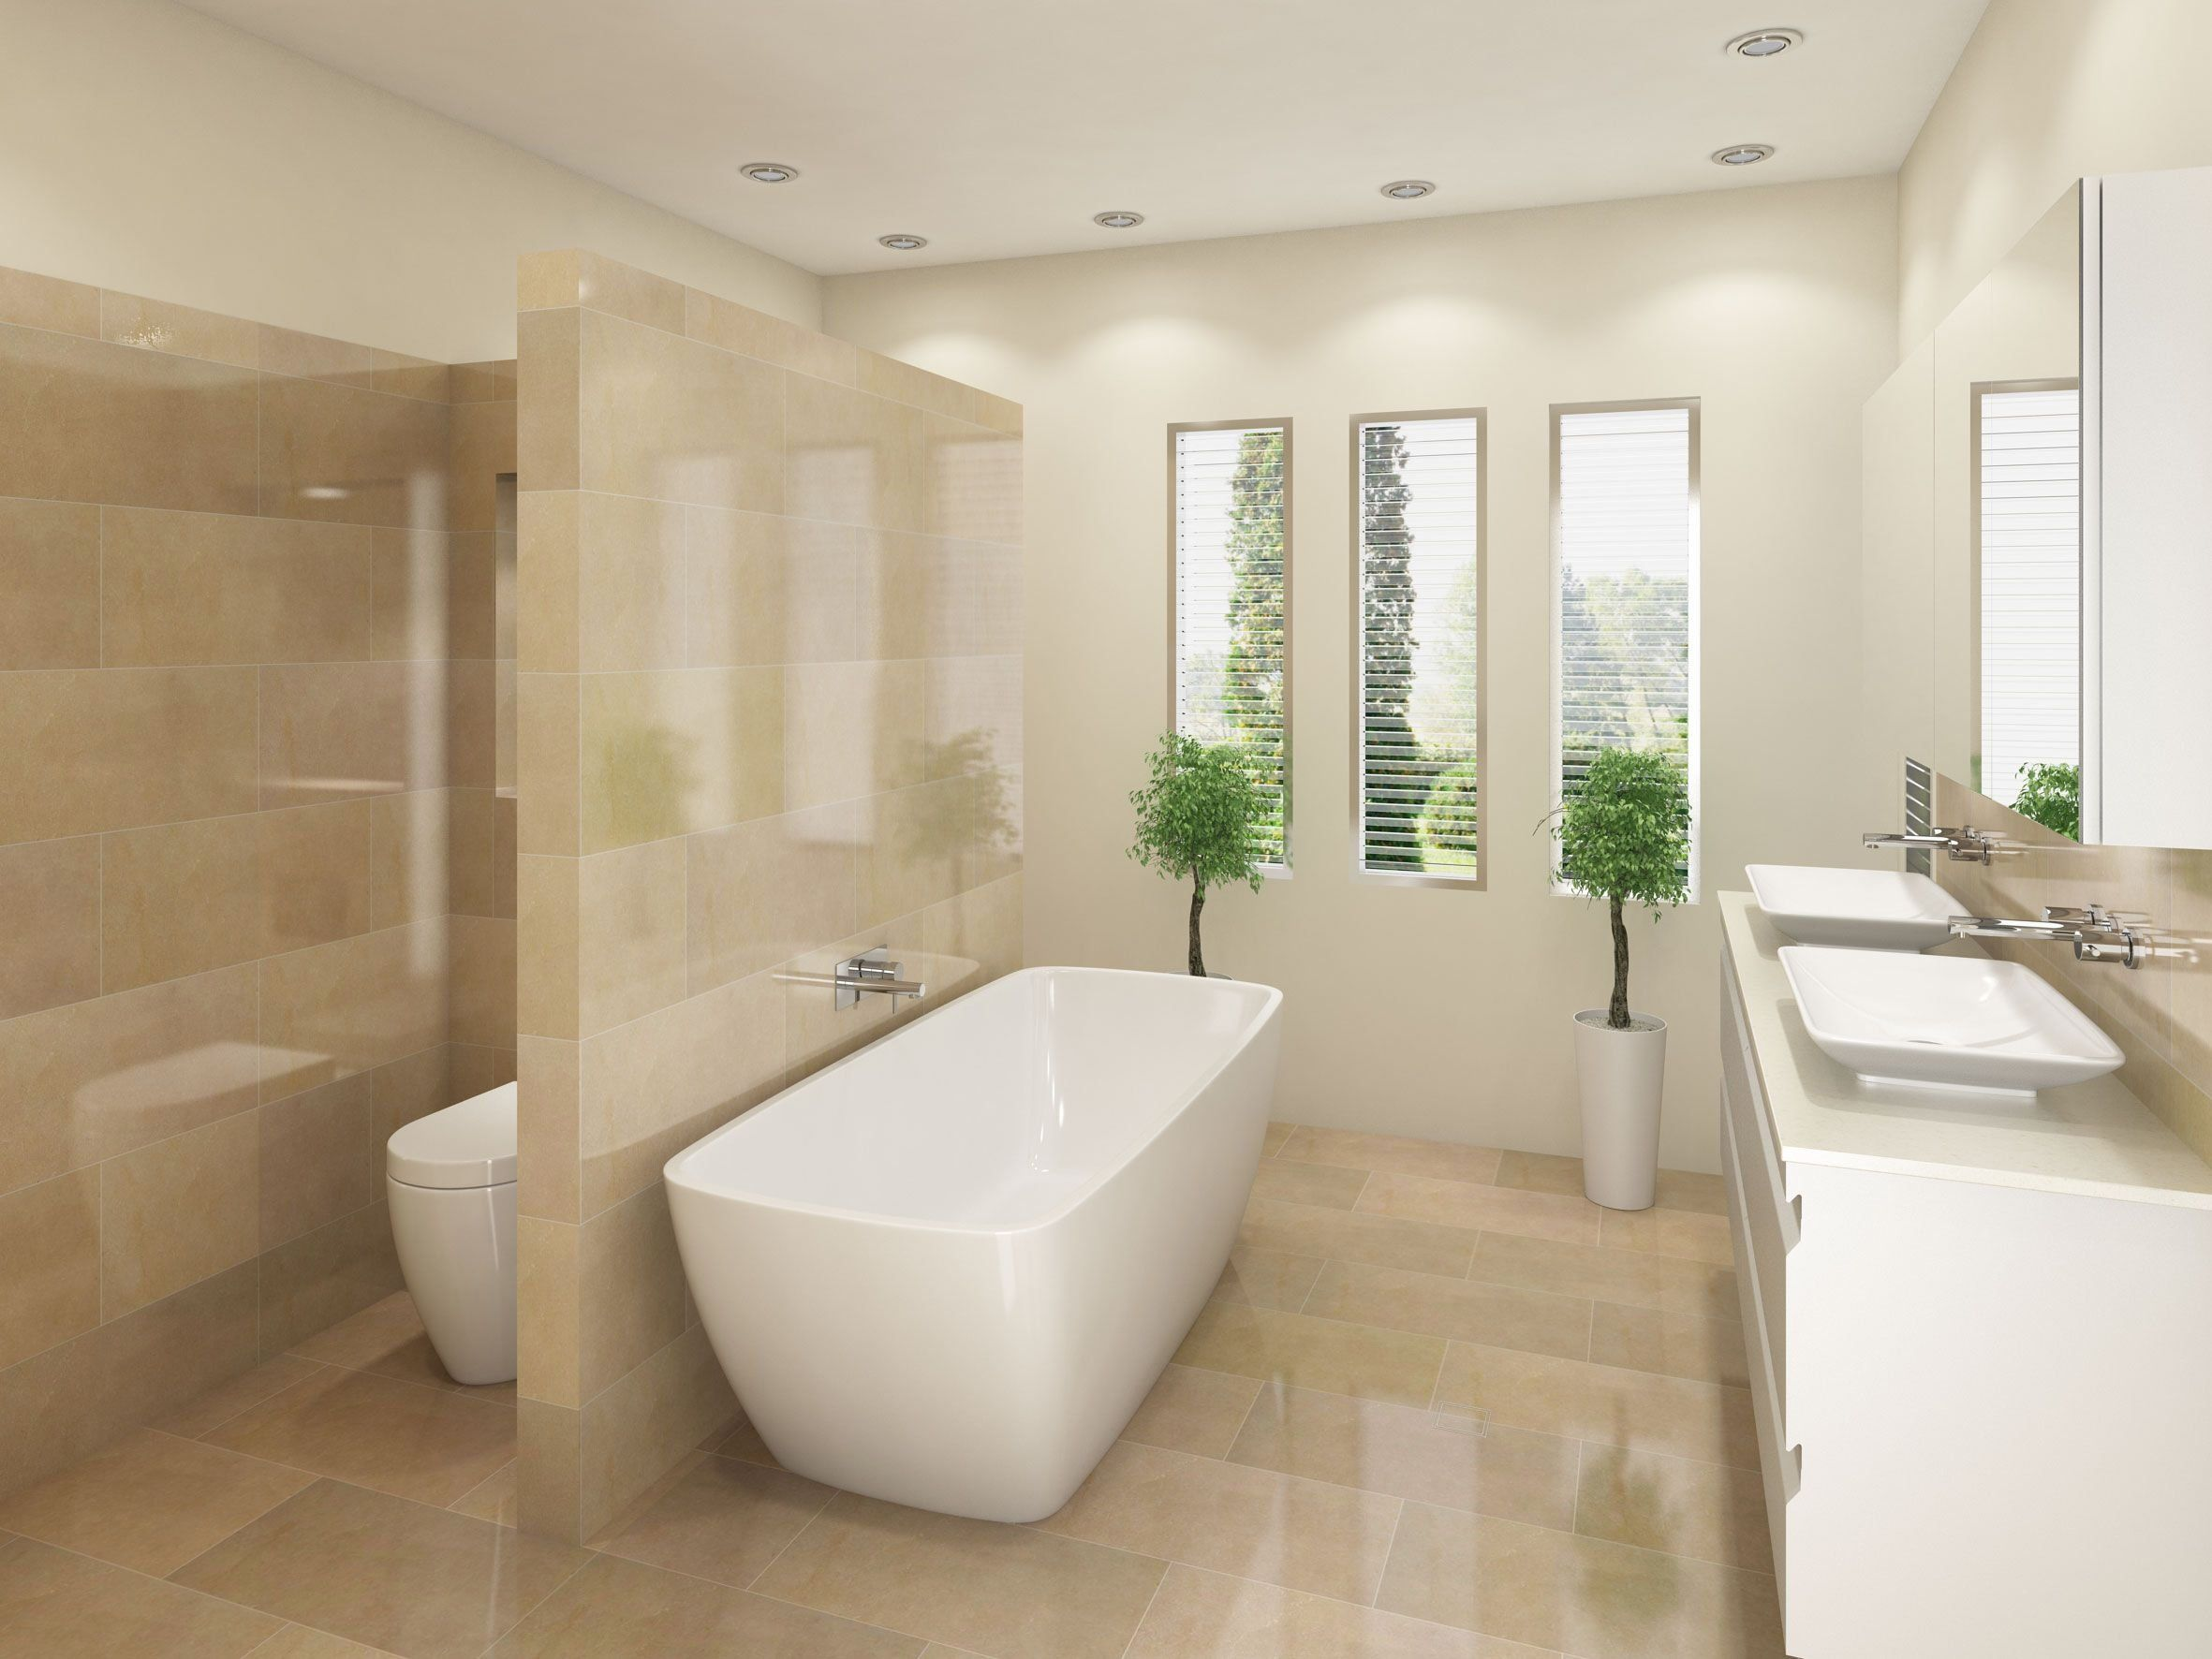 Image Result For Neutral Bathroom Ideas Image Result For Neutral Bathroom Ideas 1000 In 2020 Badezimmer Farben Badezimmer Badezimmer Farbideen